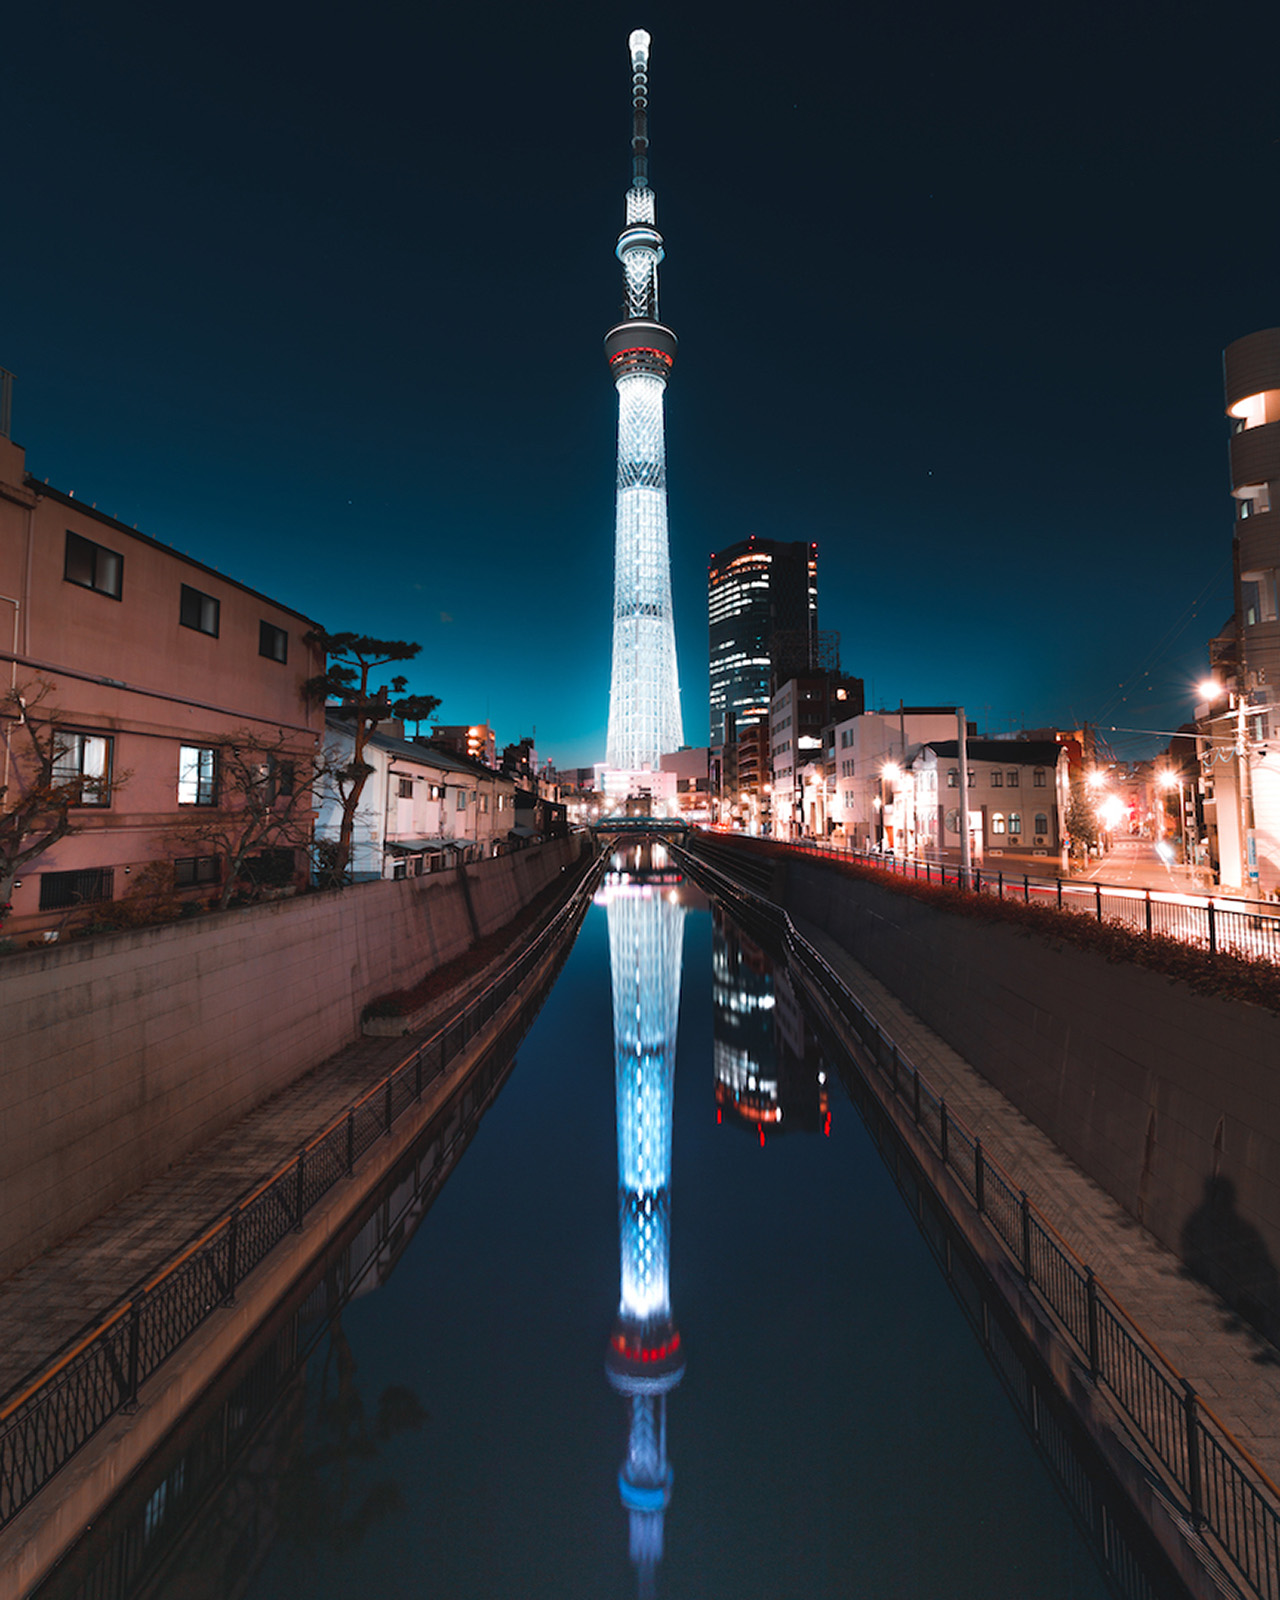 One can escape the sounds of the city in search of a quieter space and sight. The infamous Tokyo Tower as seen from a residential neighbourhood.